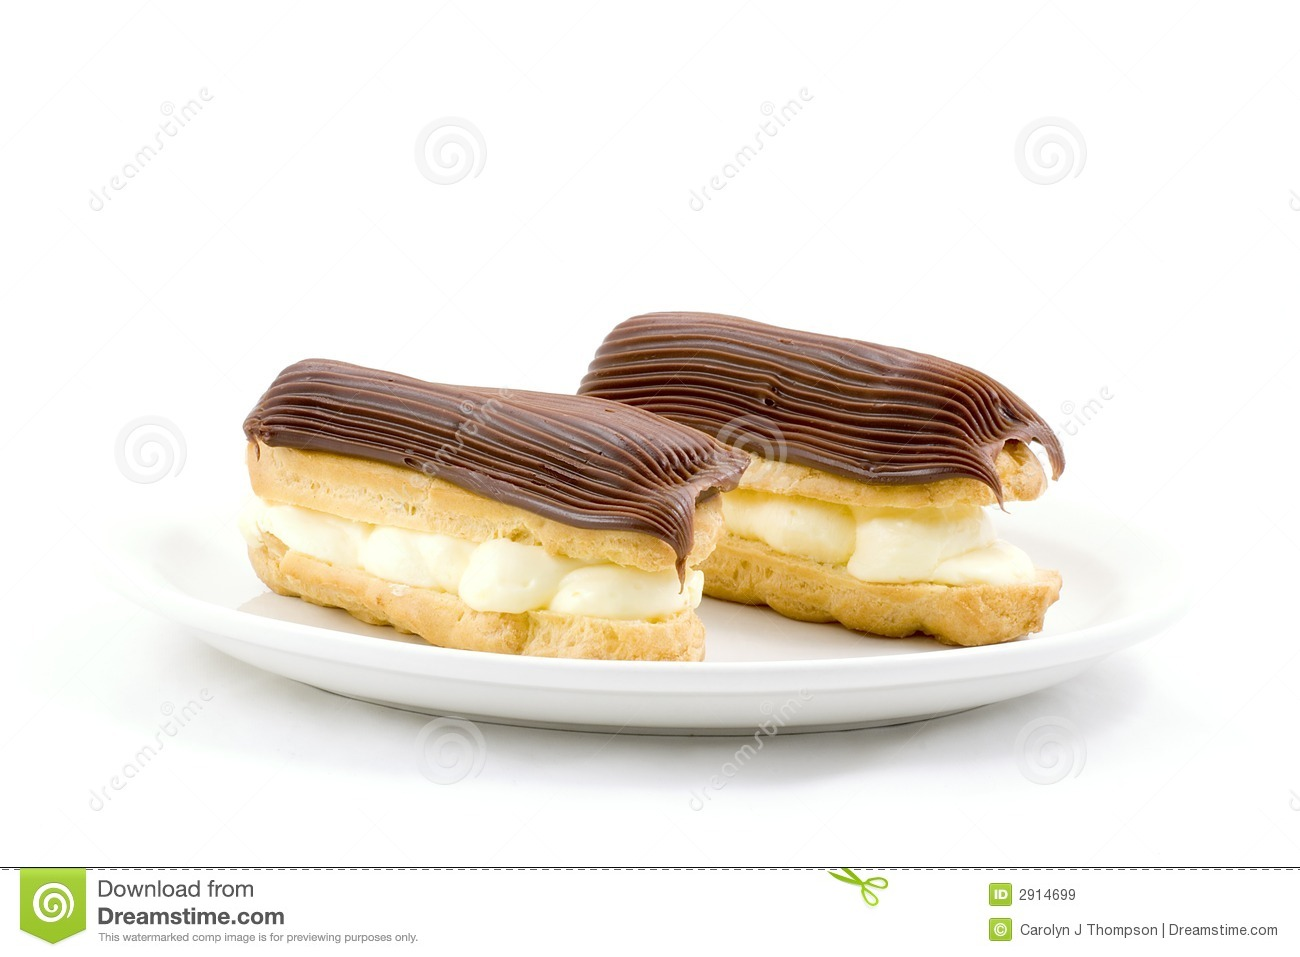 Two chocolate frosted eclairs on a white plate.